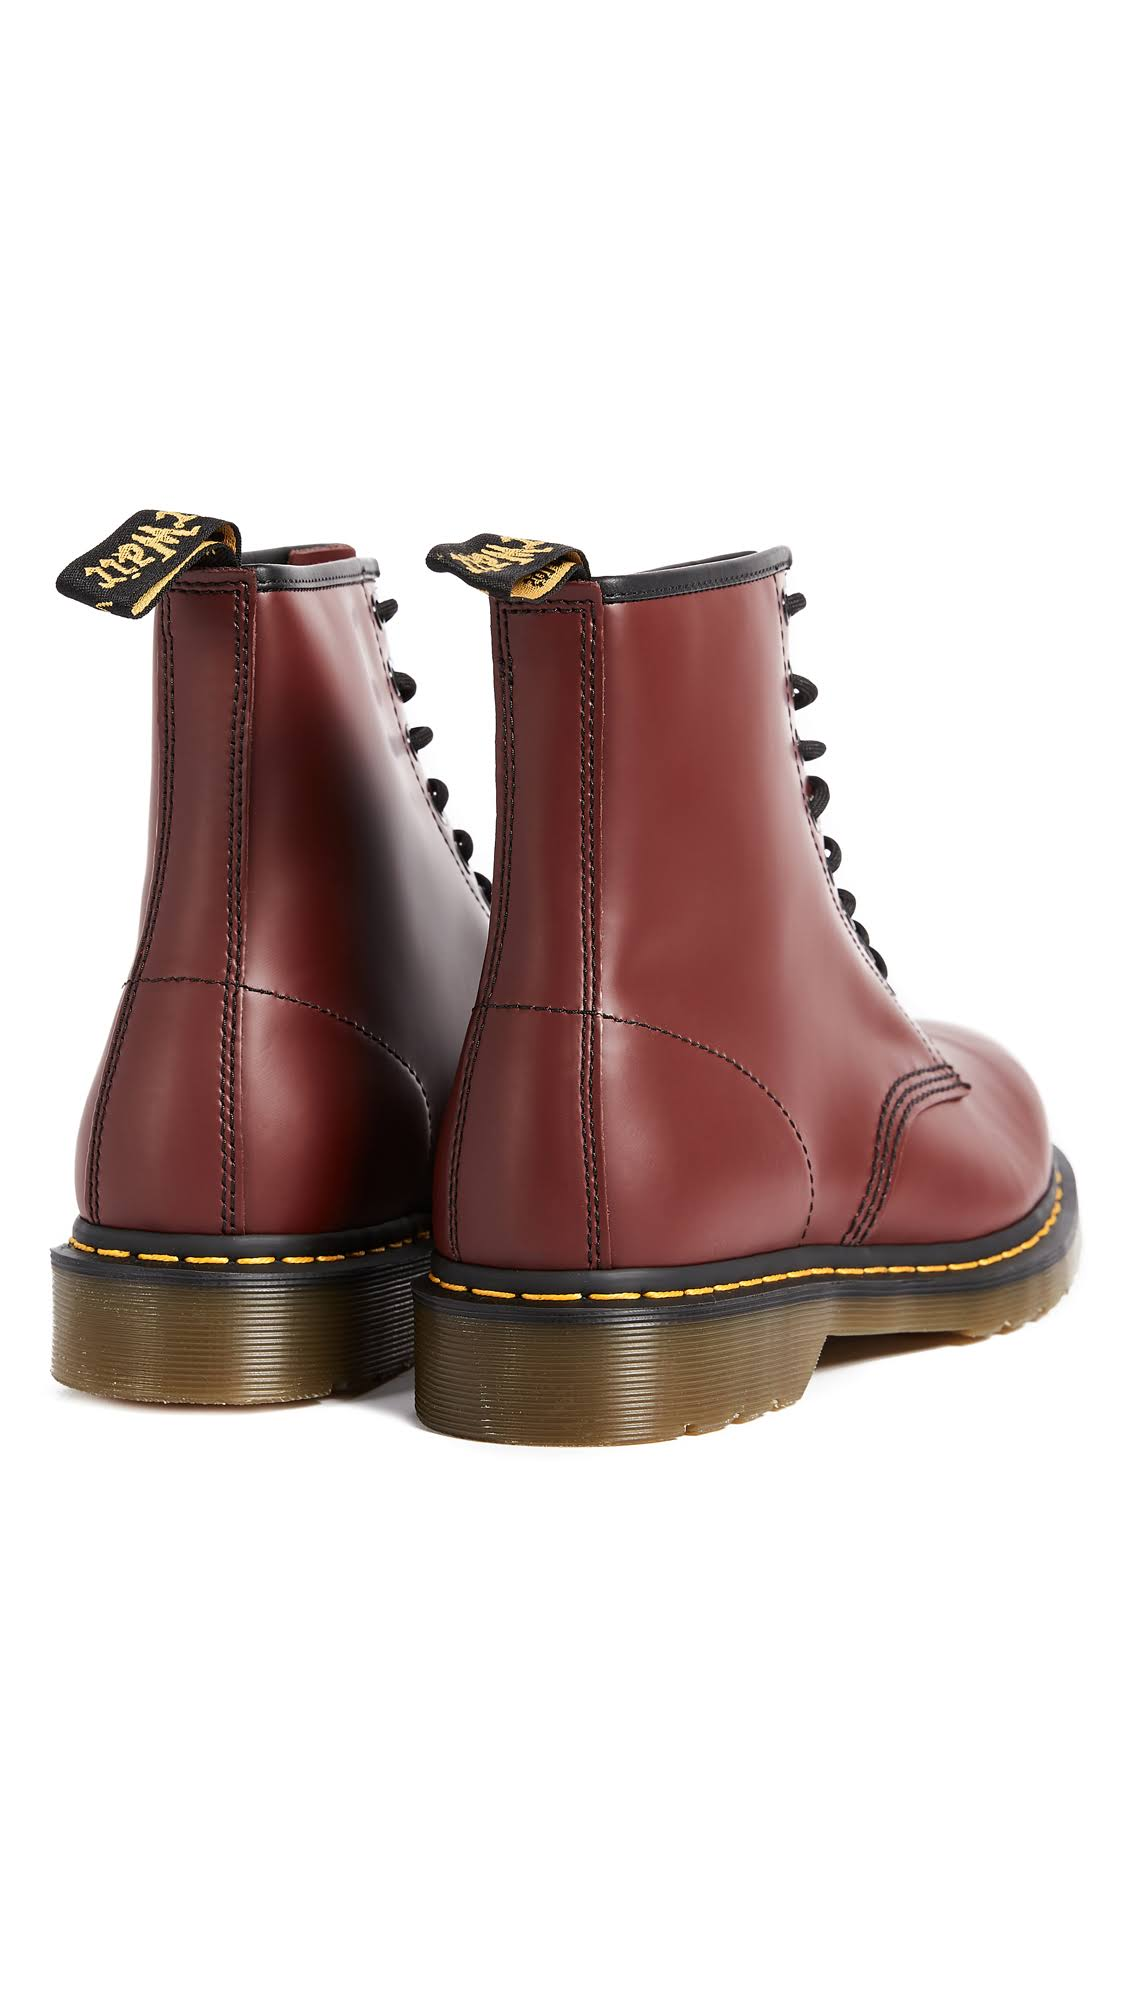 Boots Cherry 1460 Dr Martens 8 12 Eye Red H7W1a